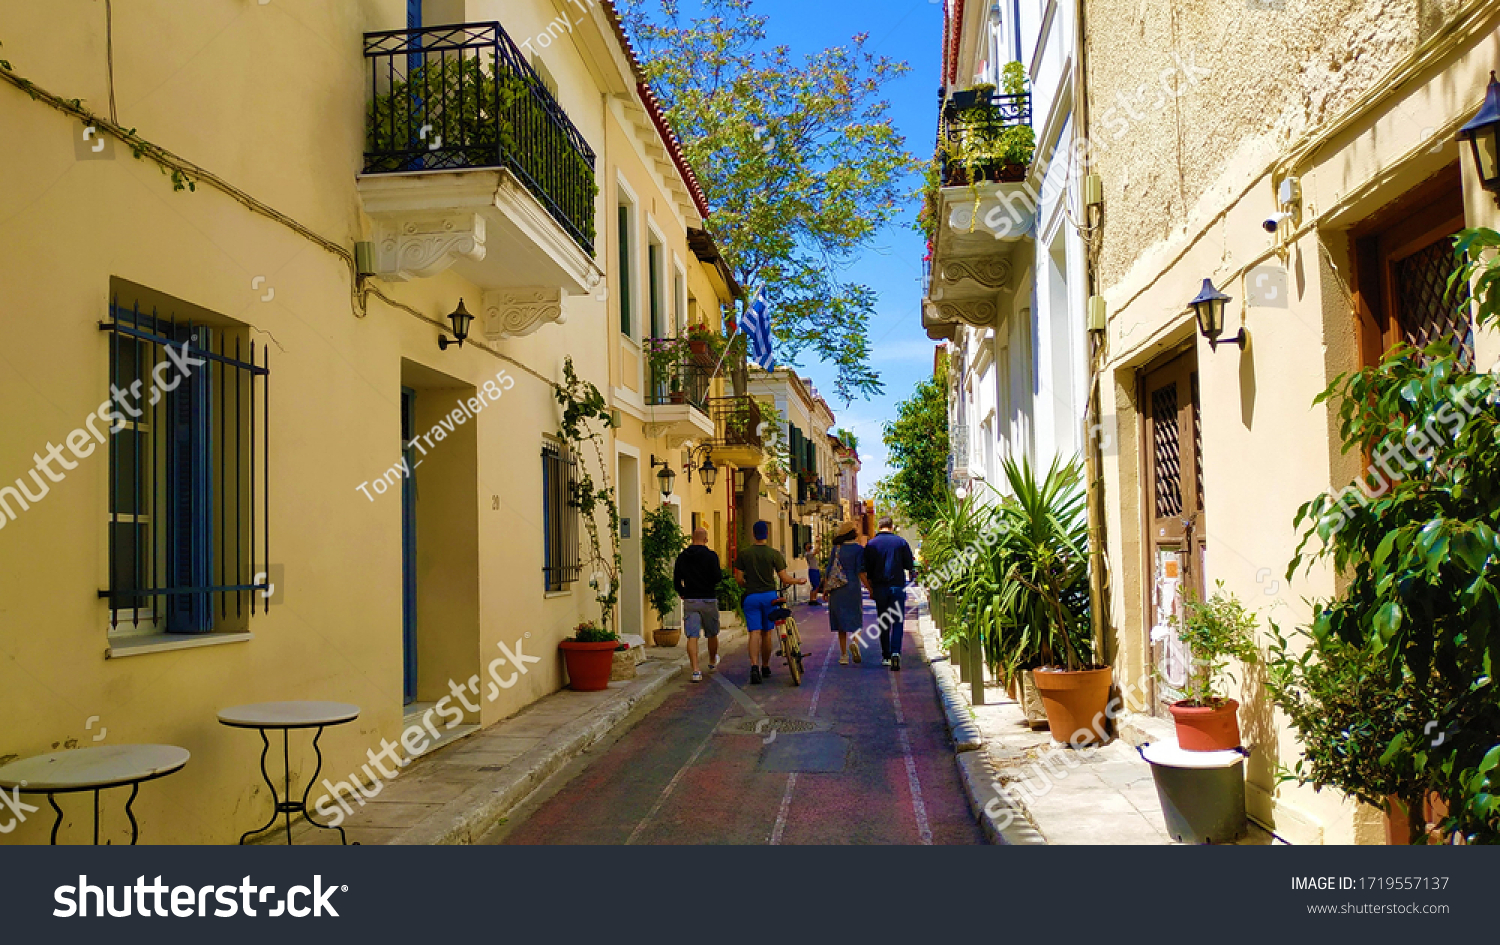 stock-photo-athens-greece-april-pictures